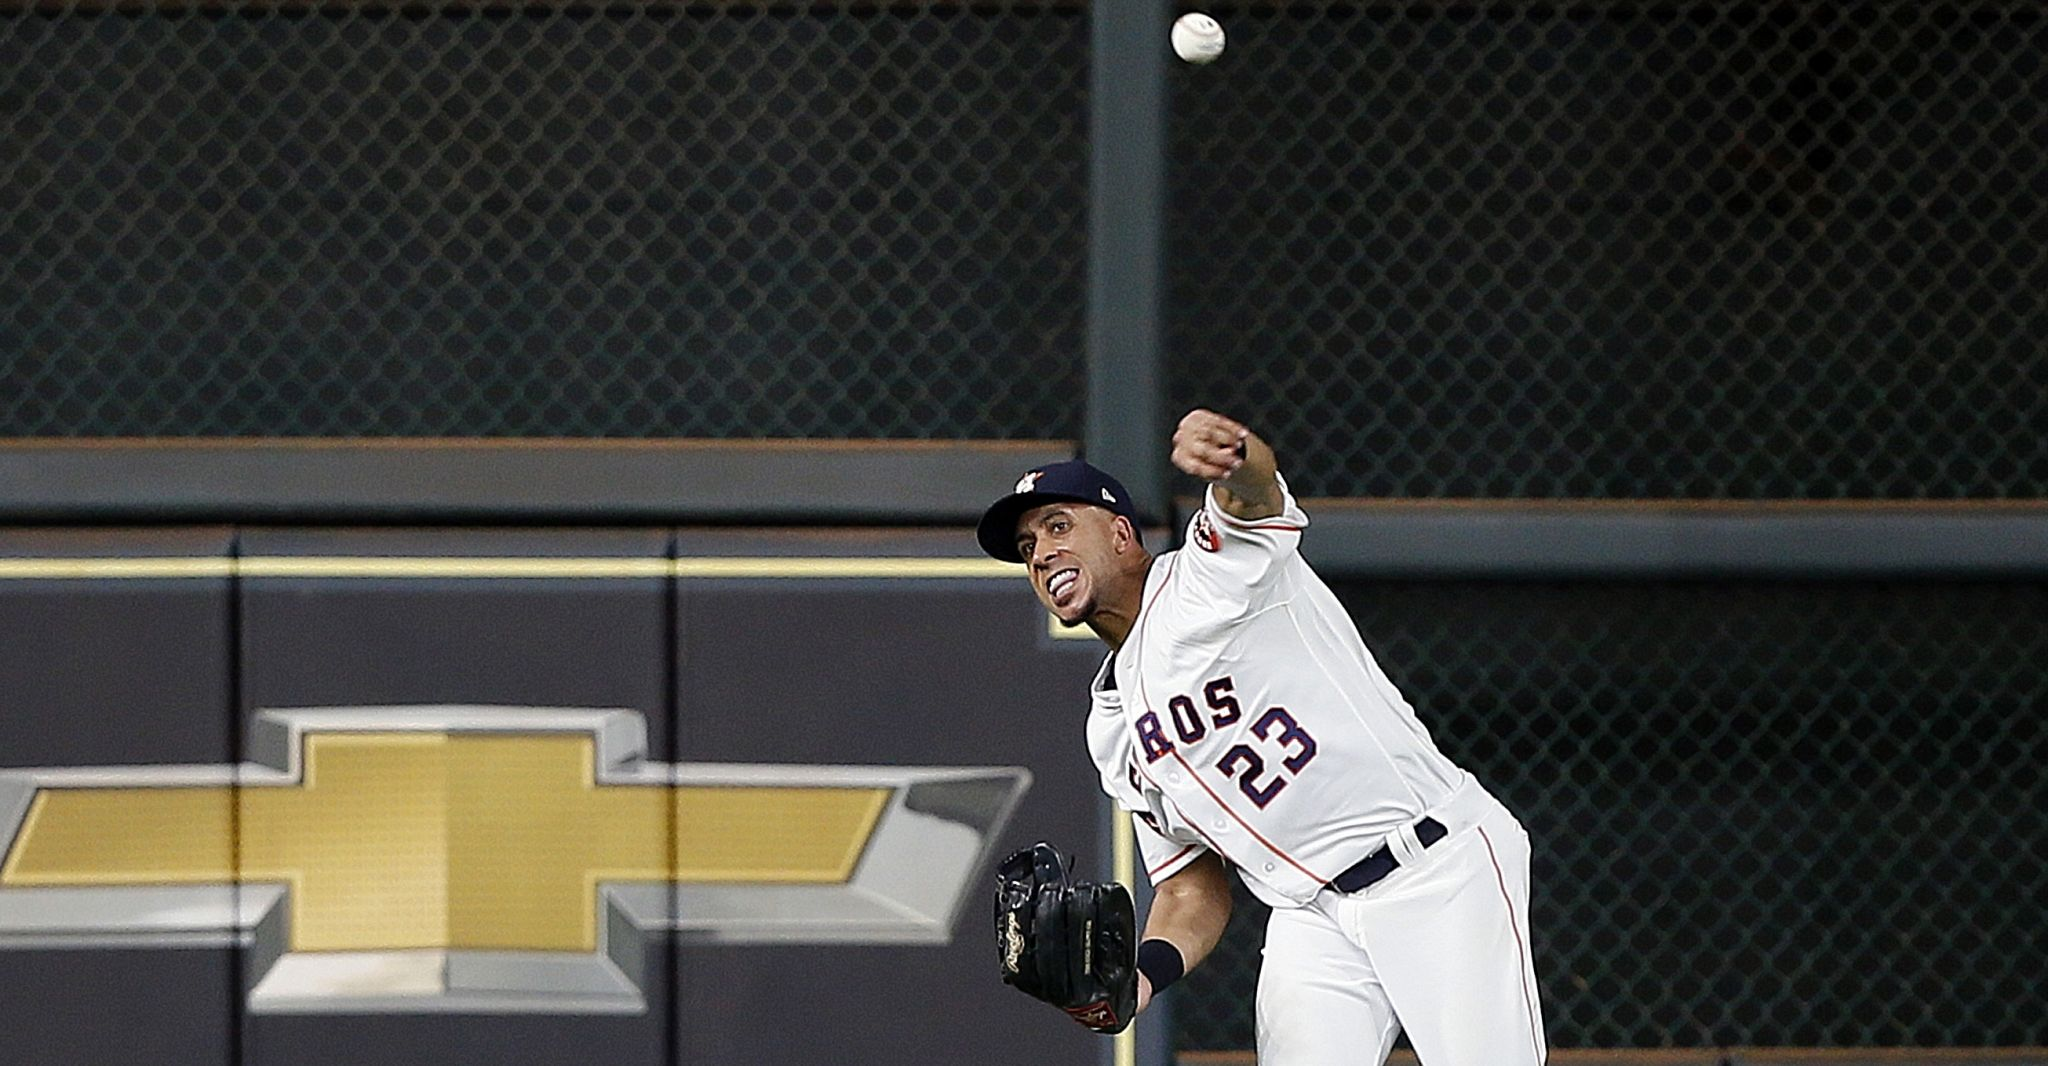 Astros deploy unusual outfield mix against Reds